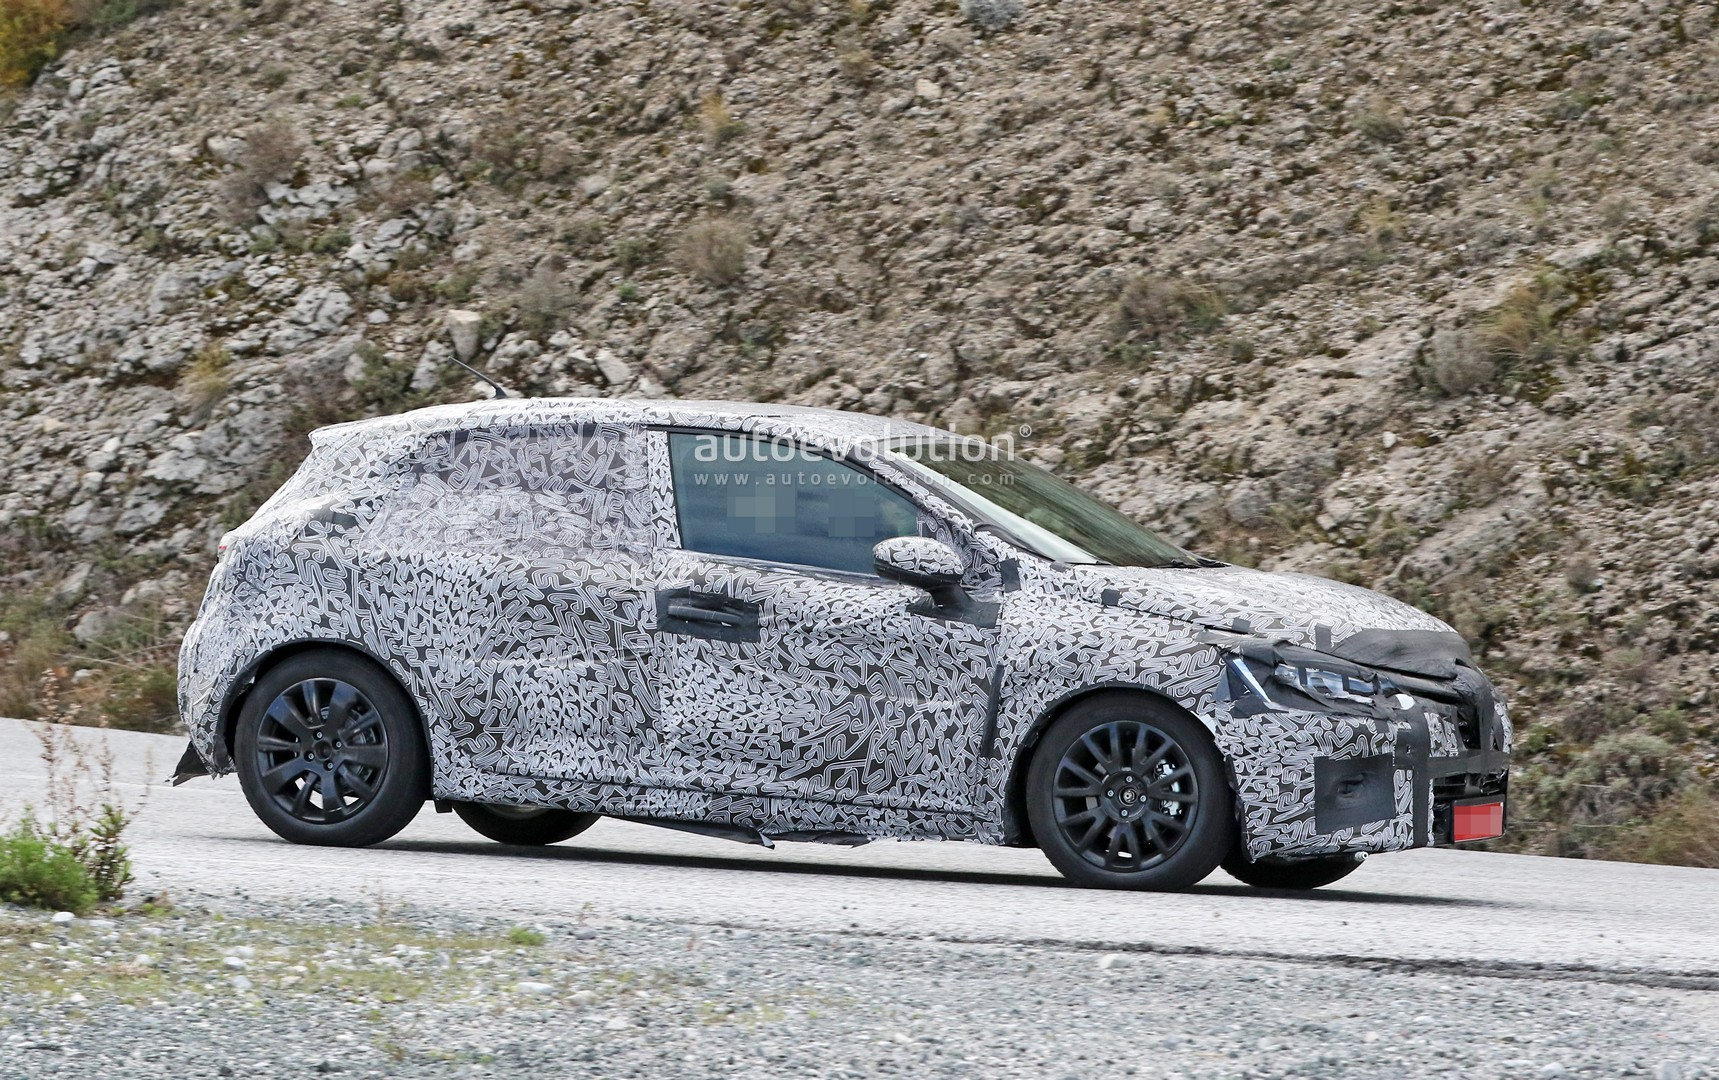 2020 Renault Clio Rs Expected To Get 1 8 Energy Tce Engine